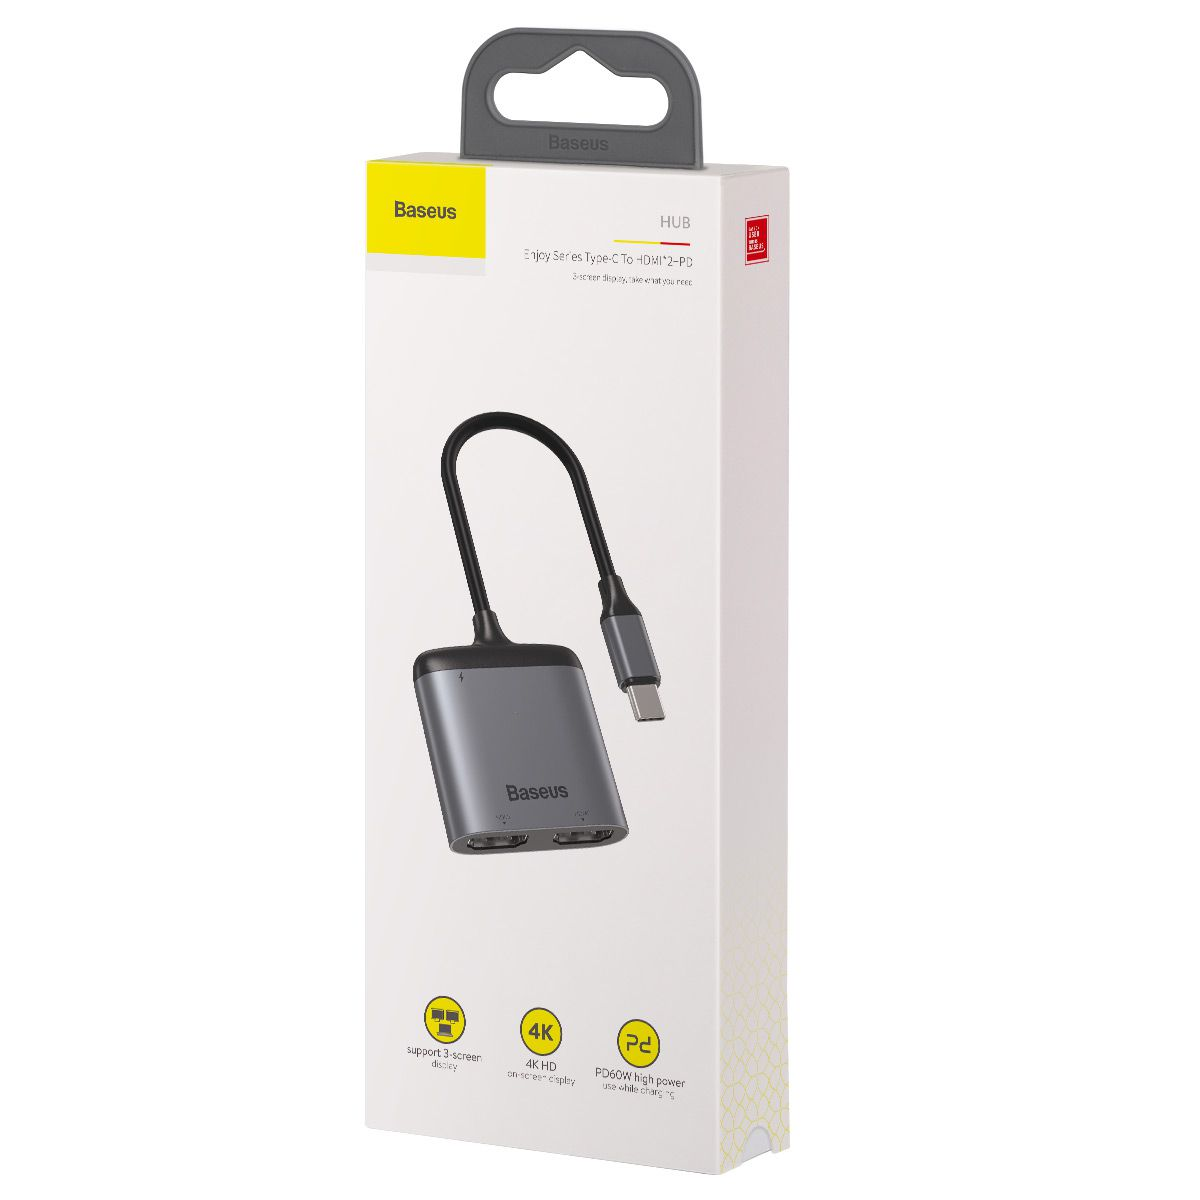 Adaptador Baseus Enjoy para 2 HDMI 4K + USB-C